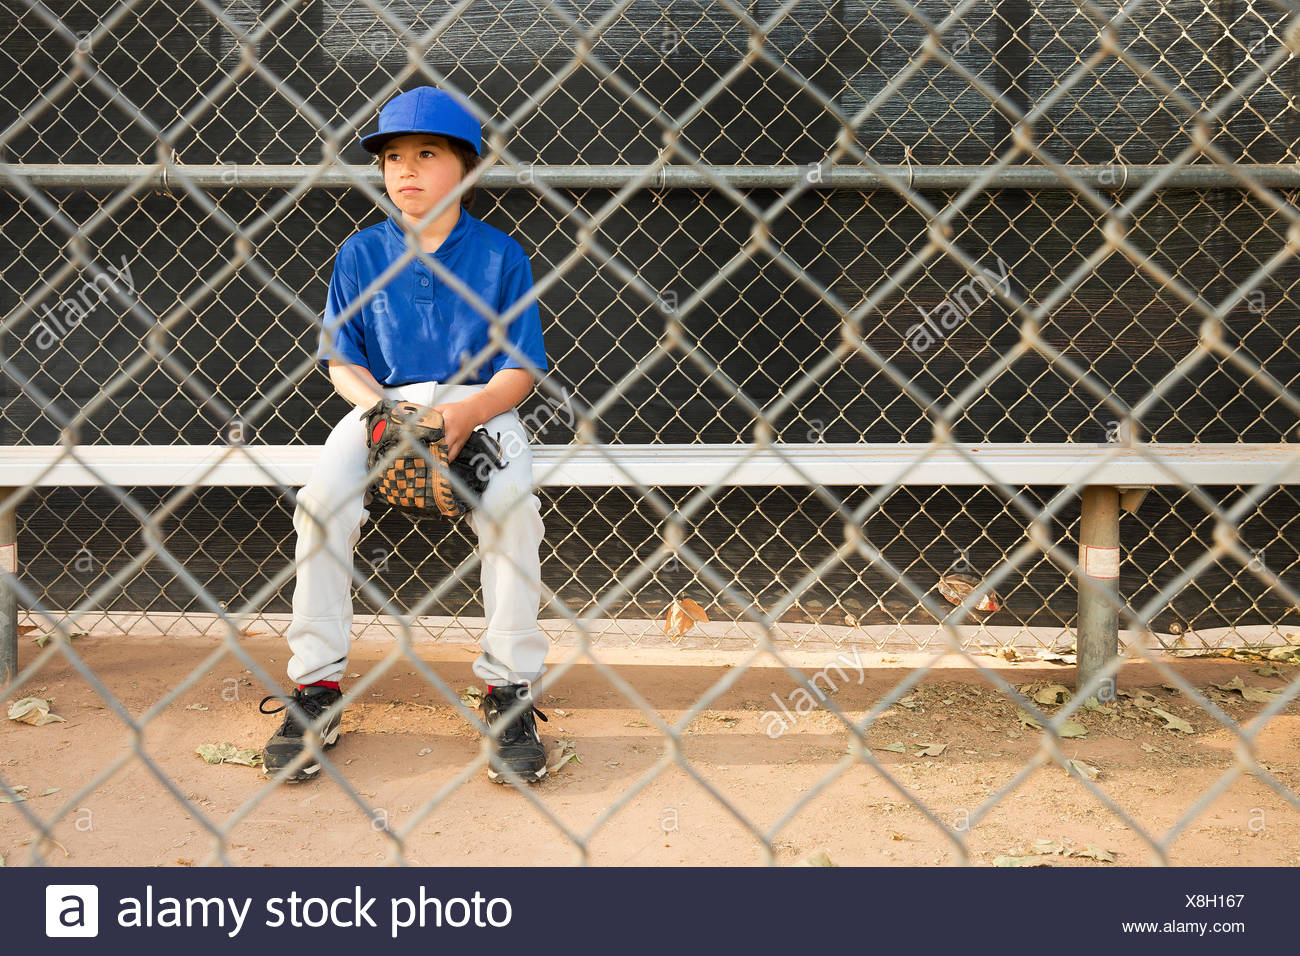 Boy sitting on bench behind wire fence at baseball practise - Stock Image